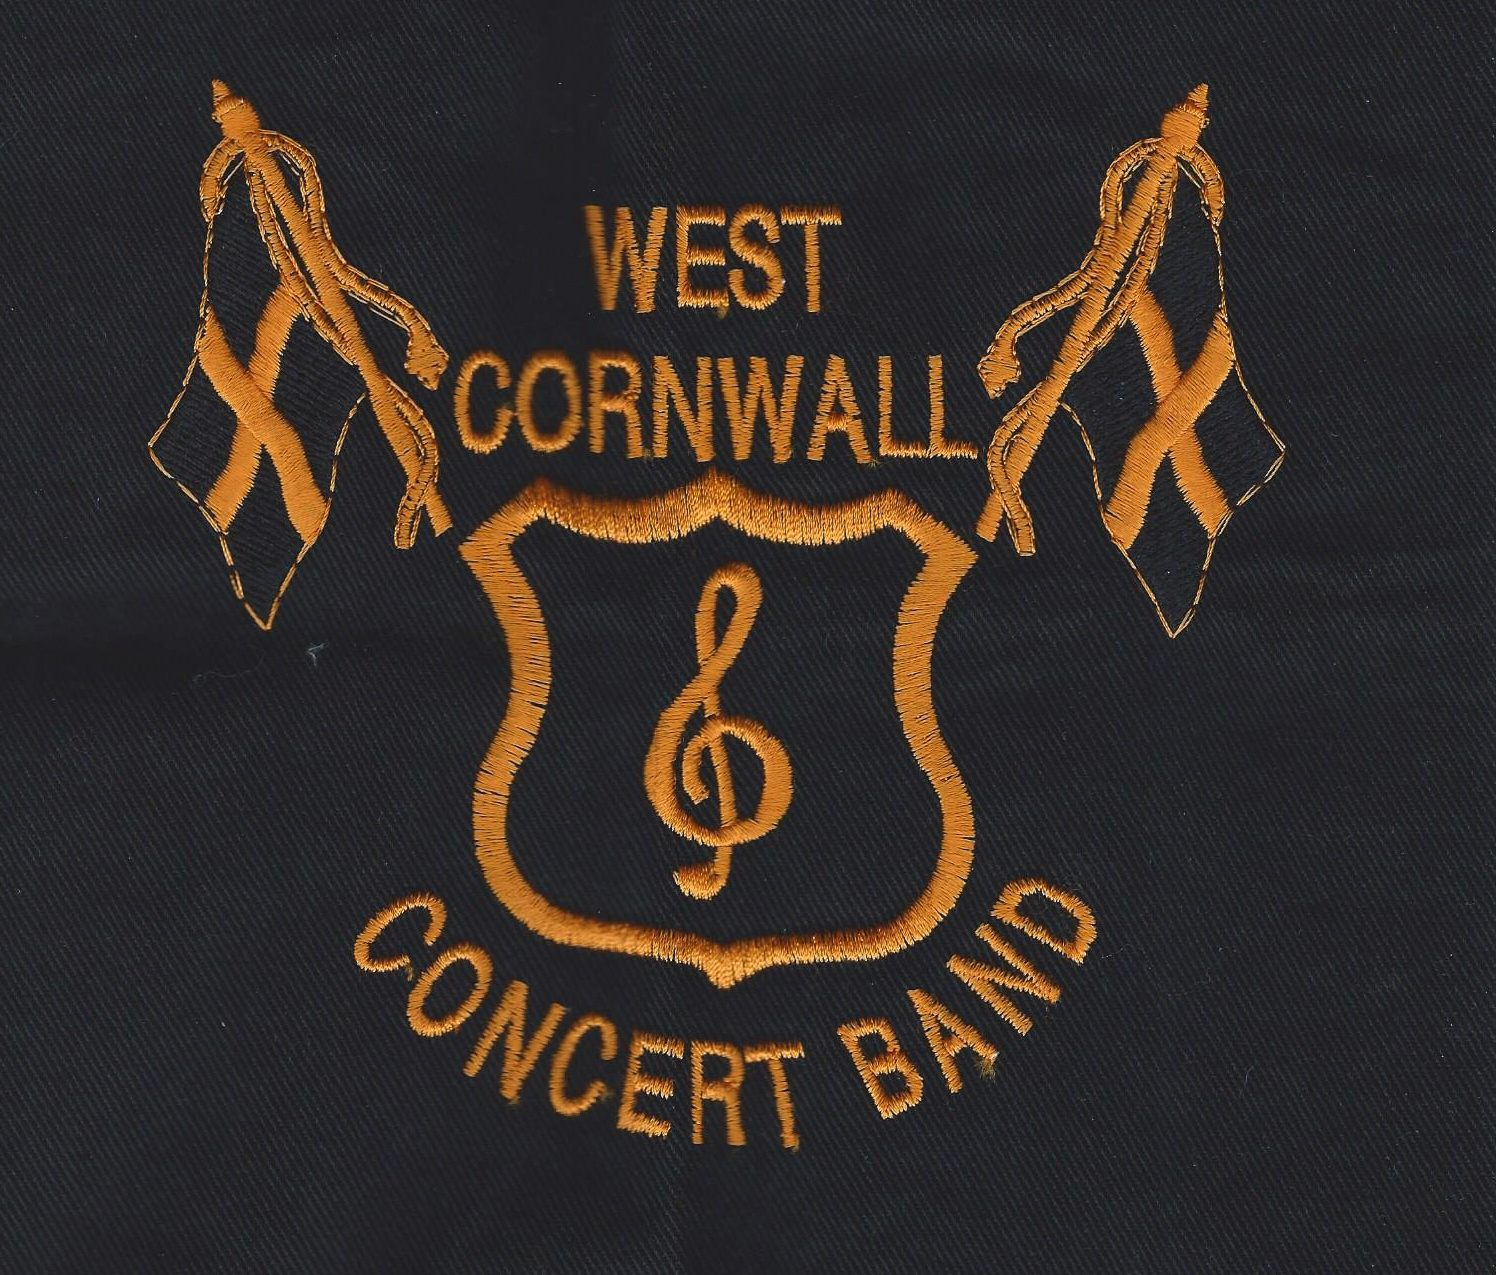 West Cornwall Concert Band